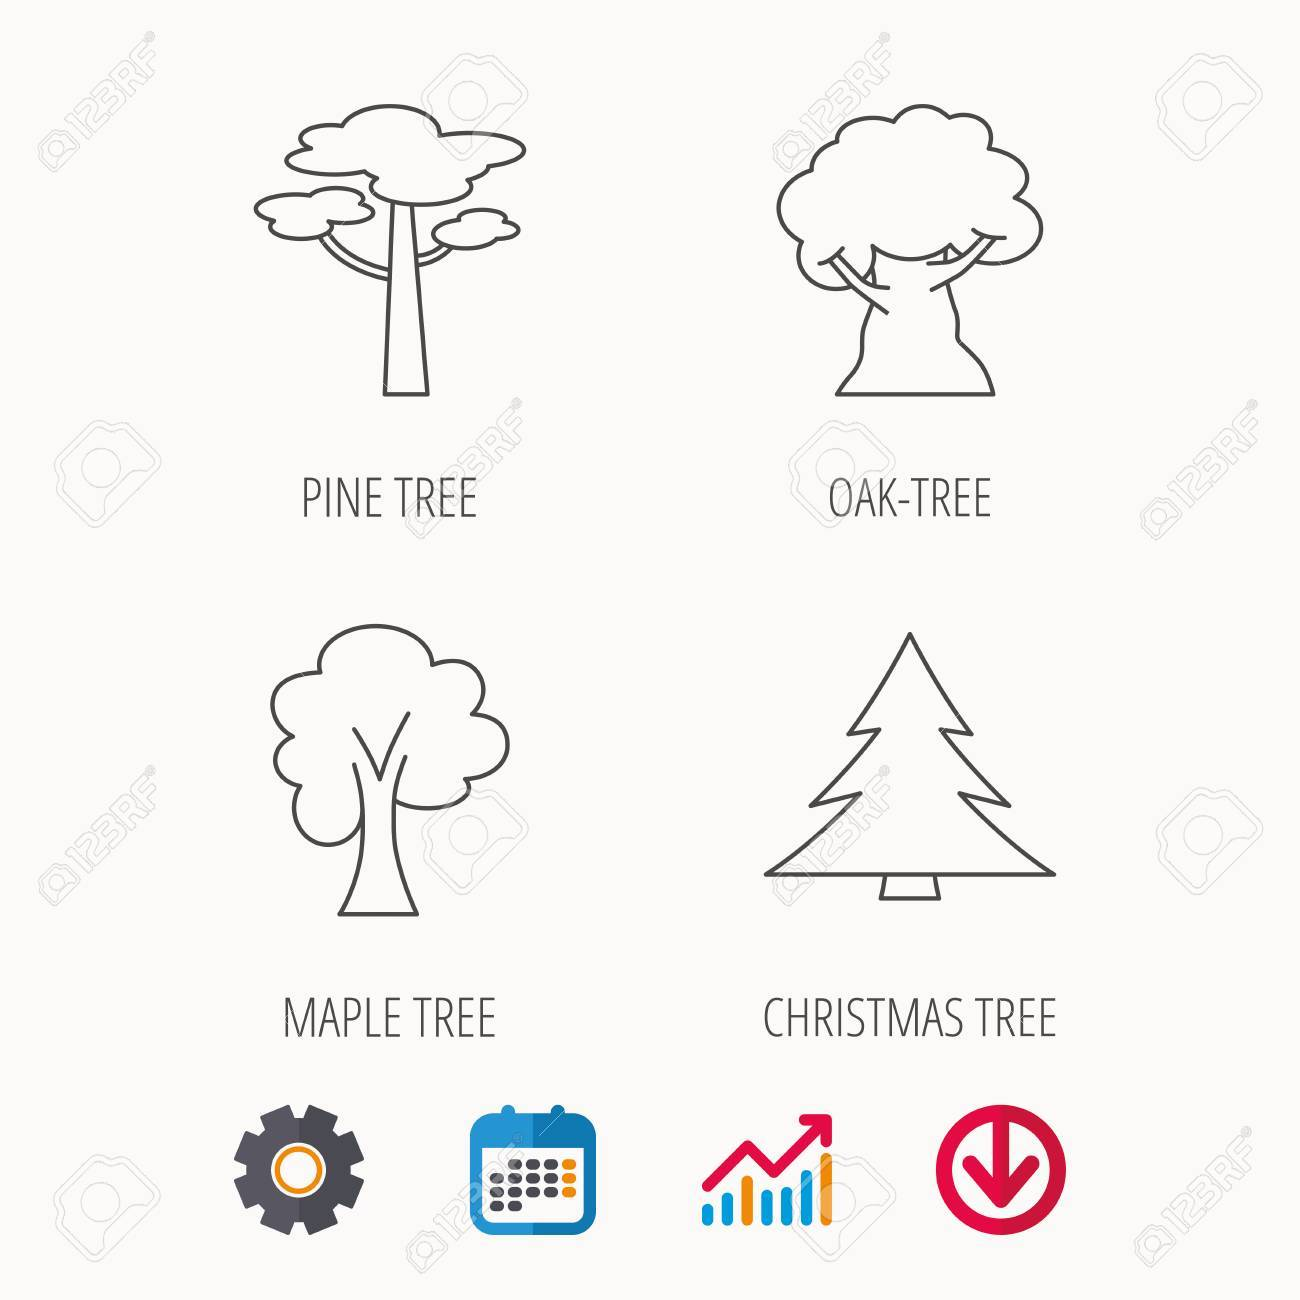 hight resolution of pine tree maple and oak tree icons forest trees linear signspine tree maple and